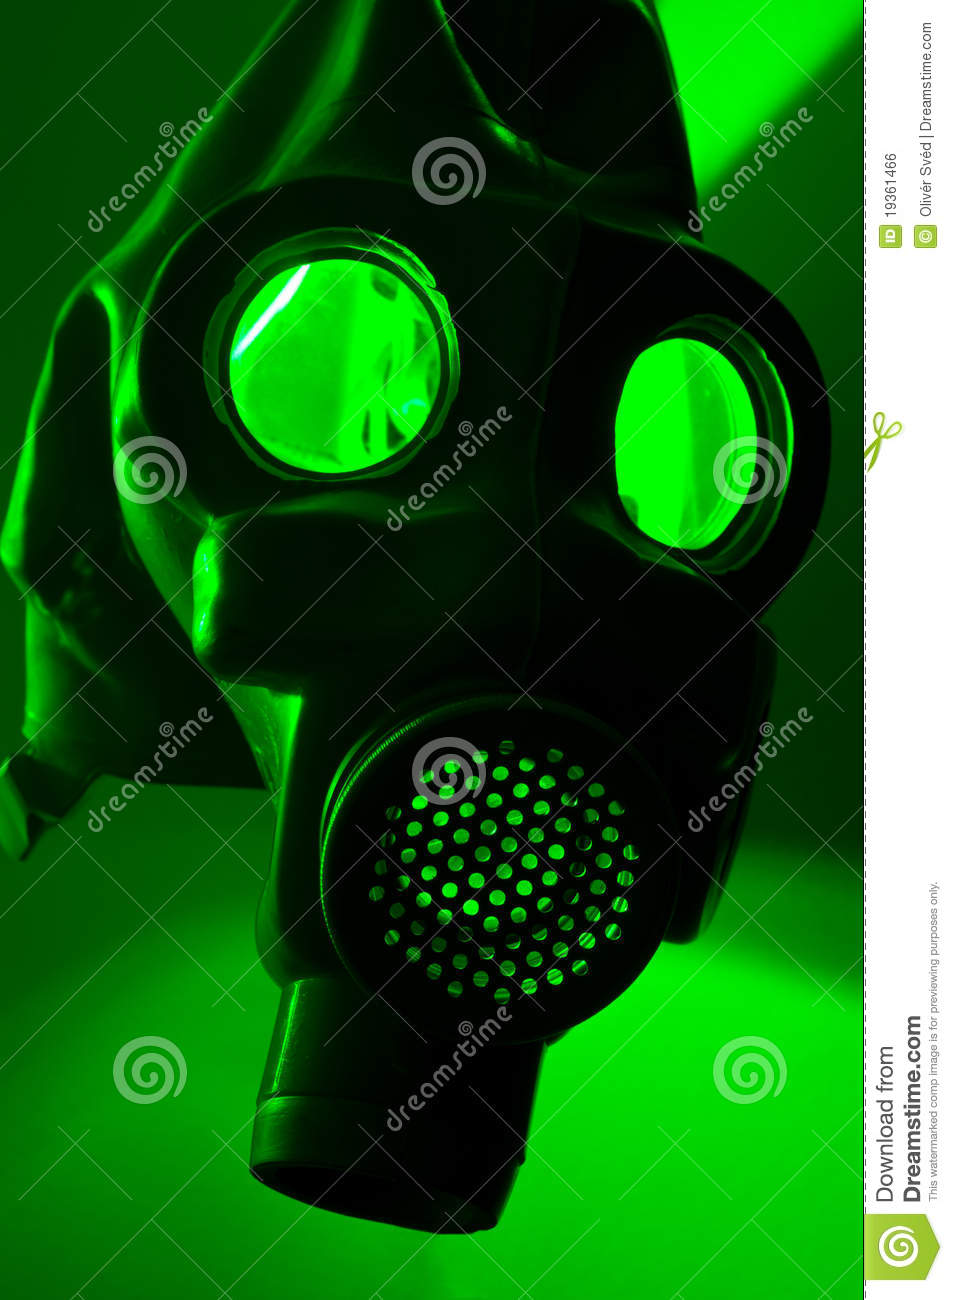 Royalty Free Stock Image  Silhouette of a gas maskGas Mask Silhouette Vector